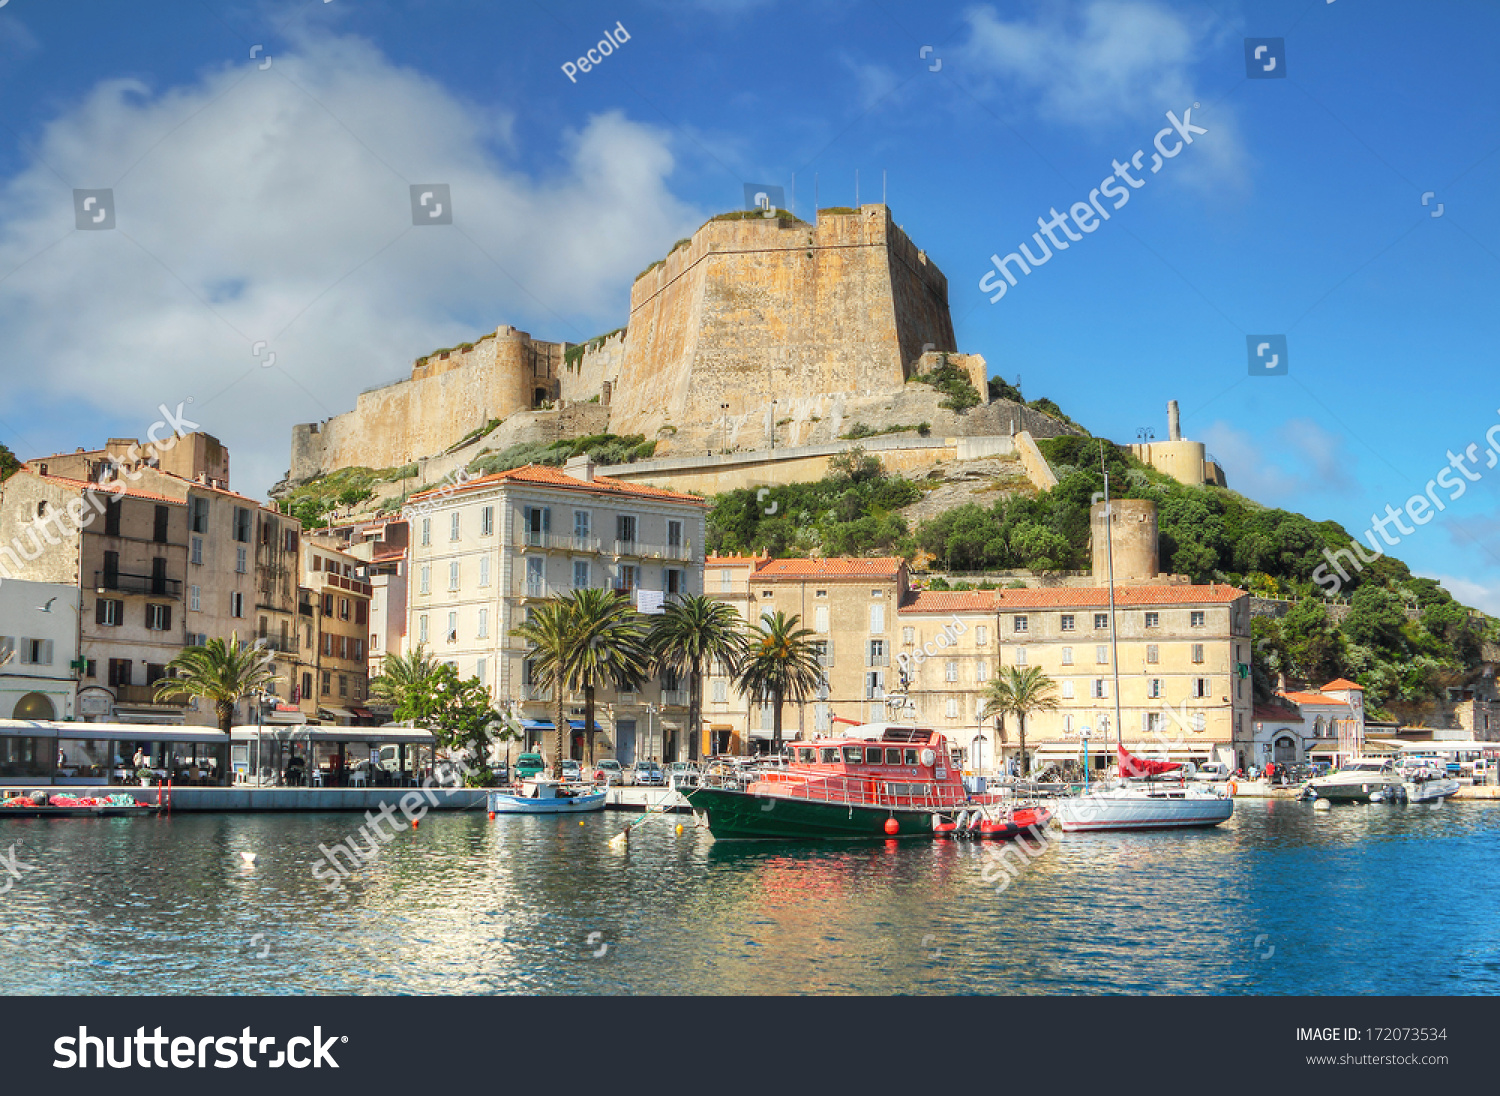 The port de plaisance of bonifacio corsica france stock - Liste des ports de plaisance en france ...